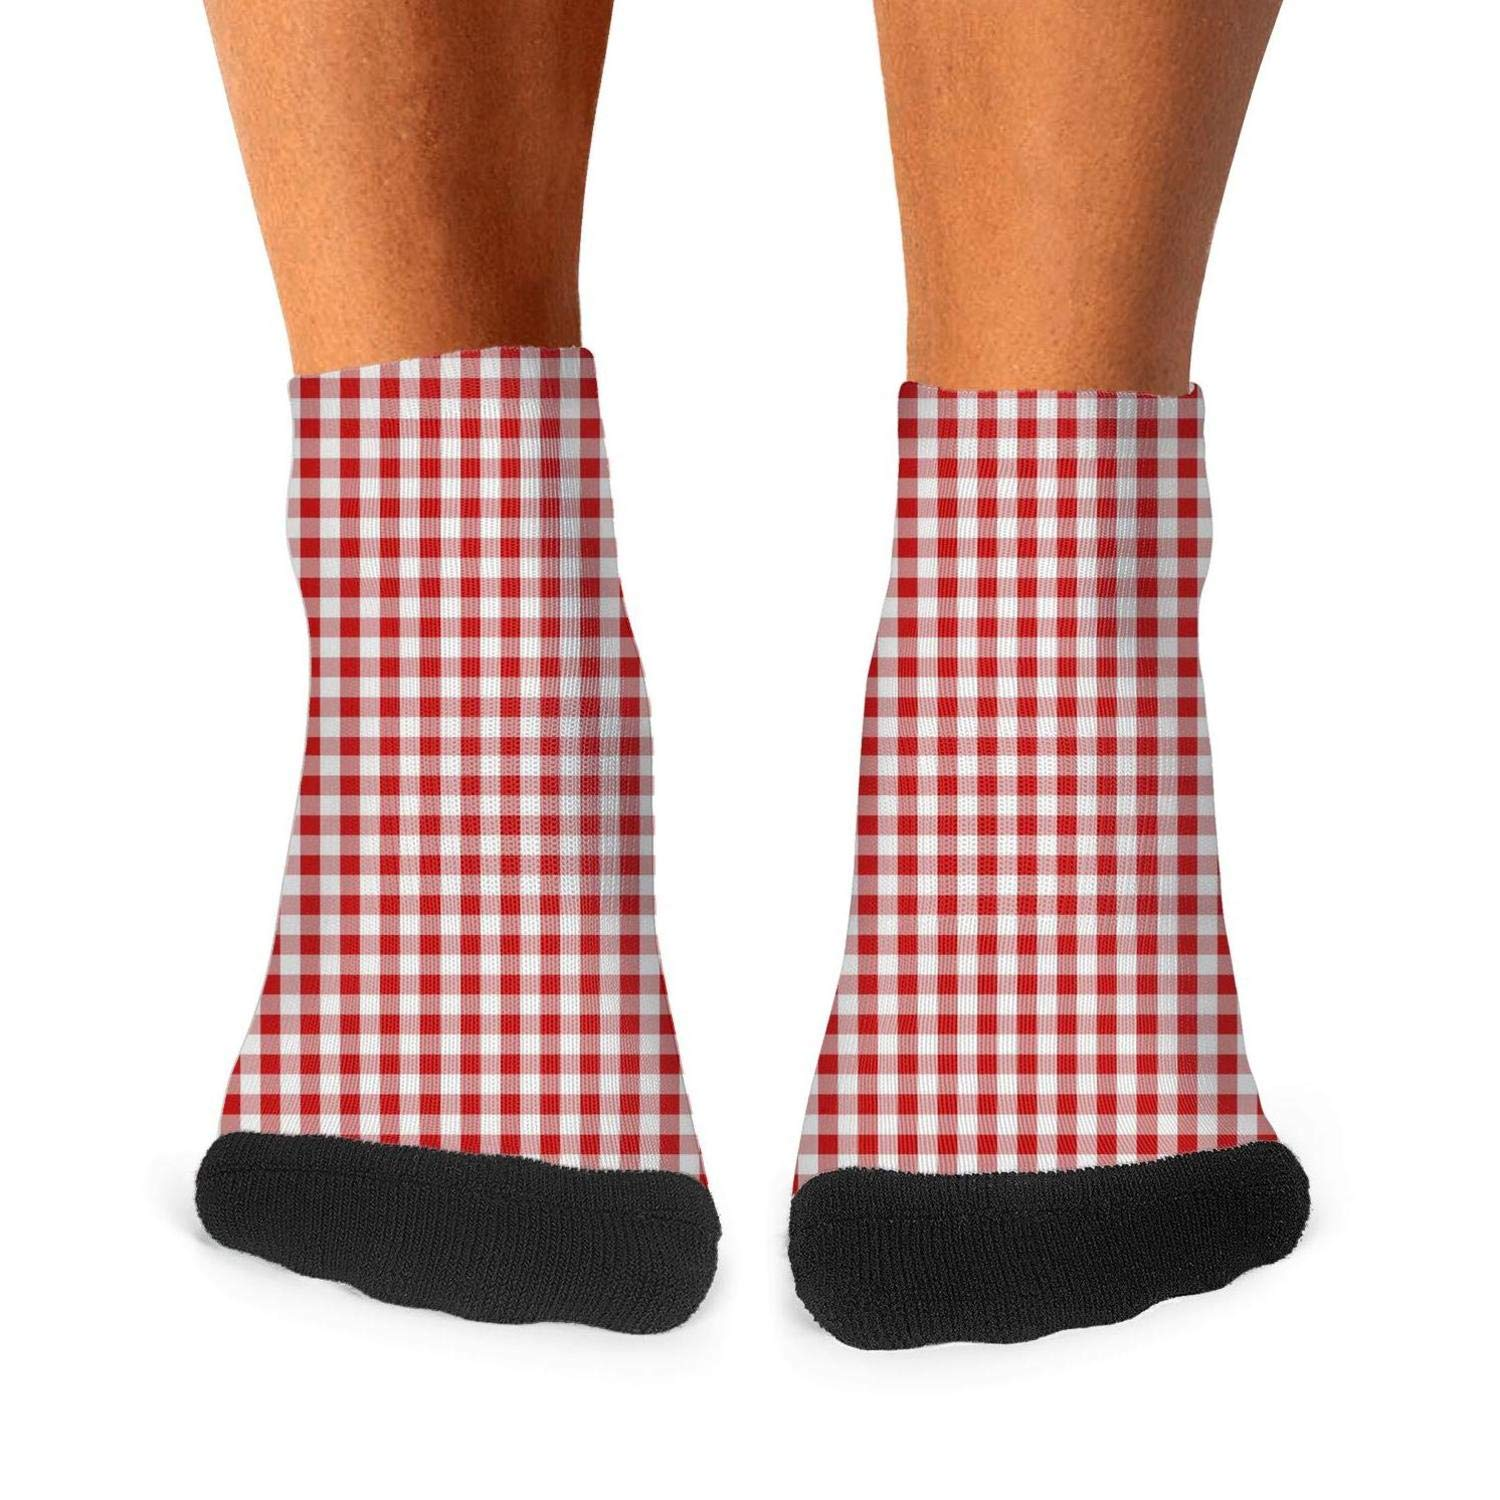 Socks Boot Lightweight Running Excellent Mens Red-White-Checkerboard-Mosaic-Lattice